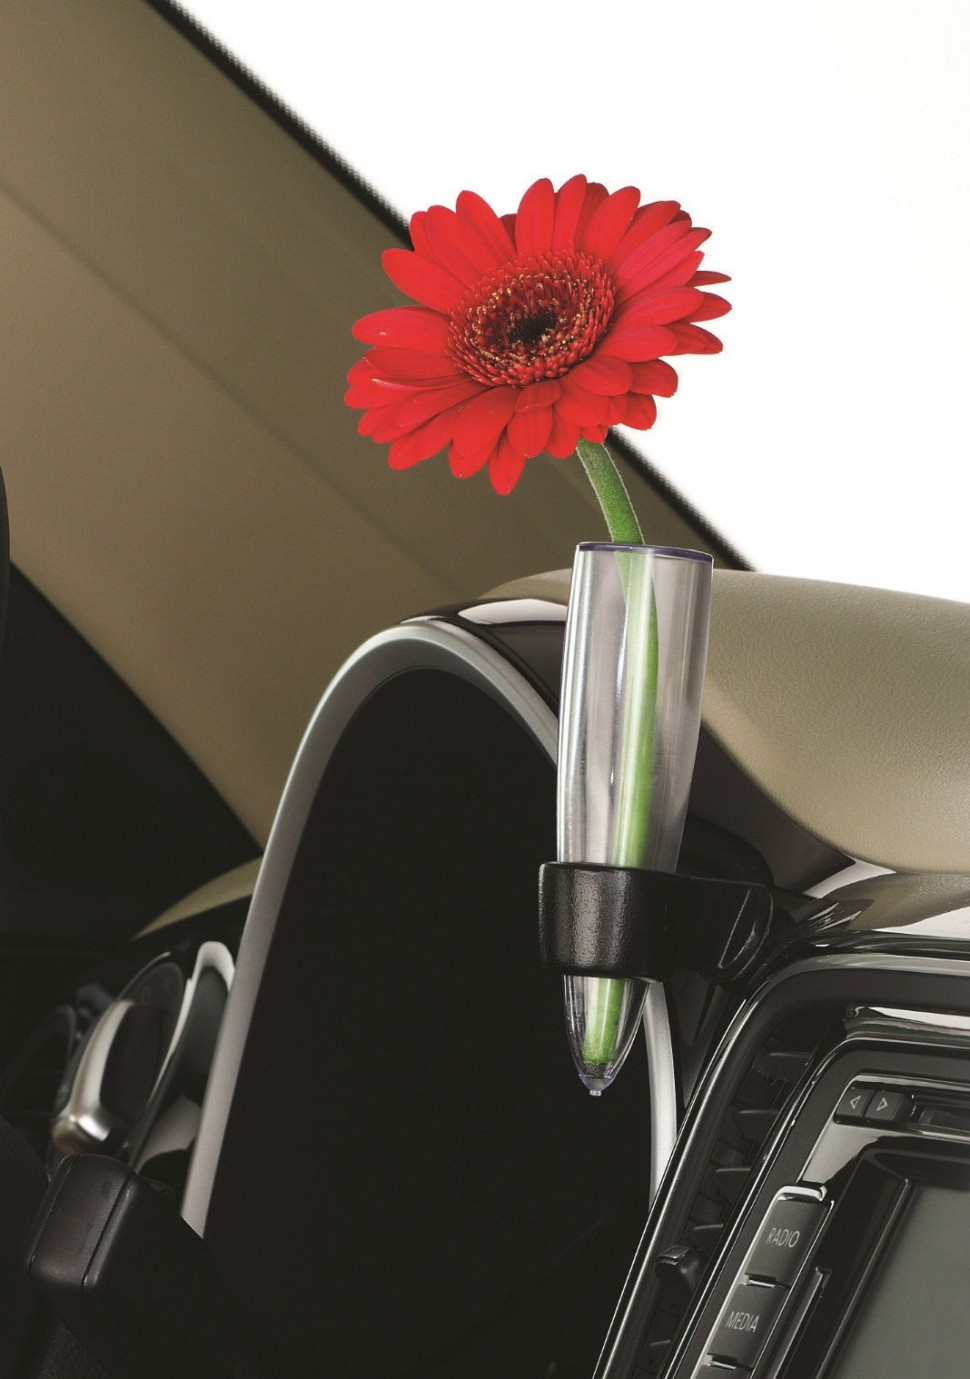 Volkswagen Beetle Dashboard Flower Vase For Lhd Vw